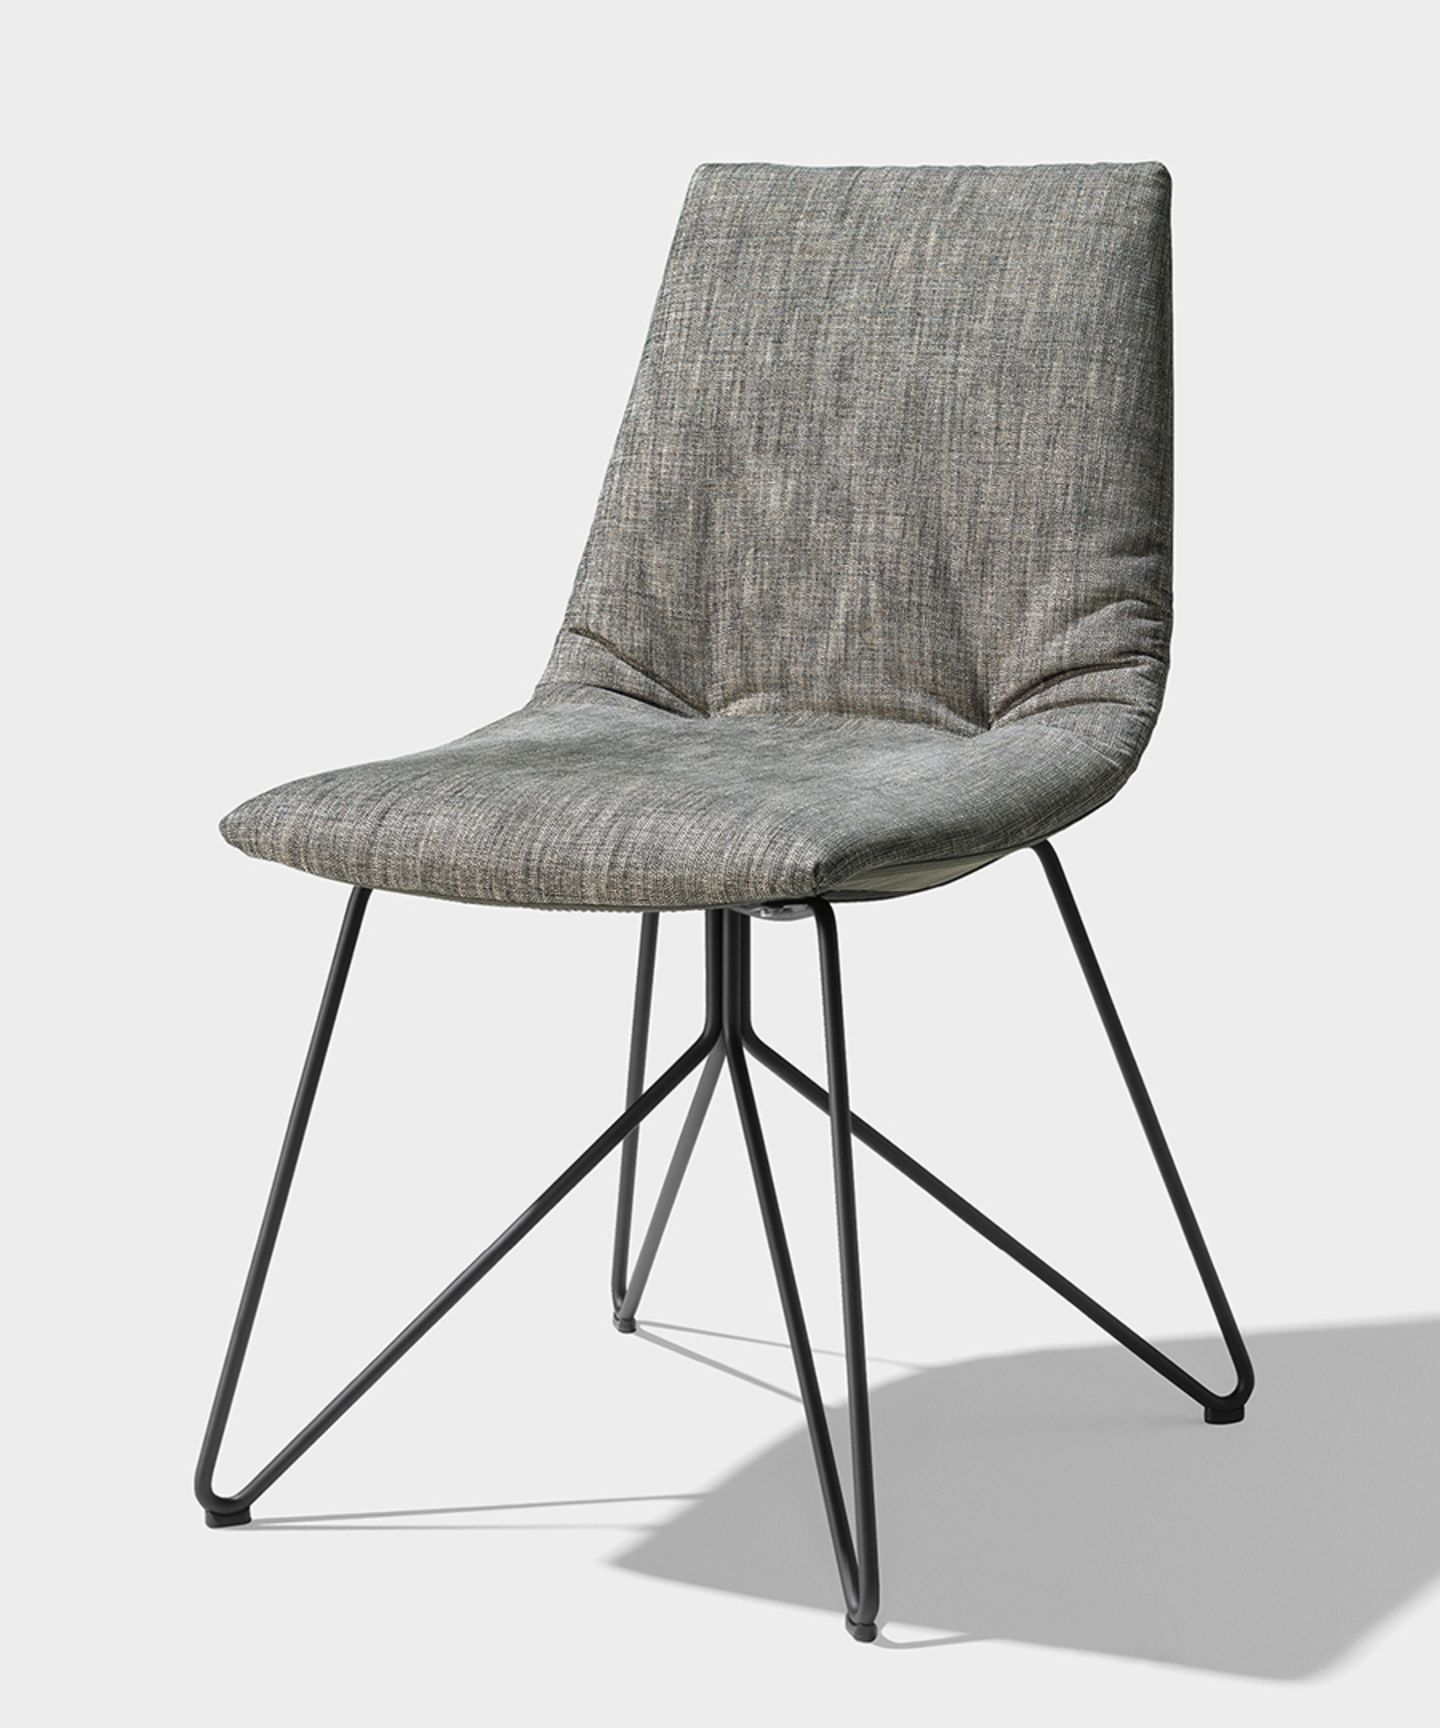 lui chair fabric maple wire frame stainless steel finish